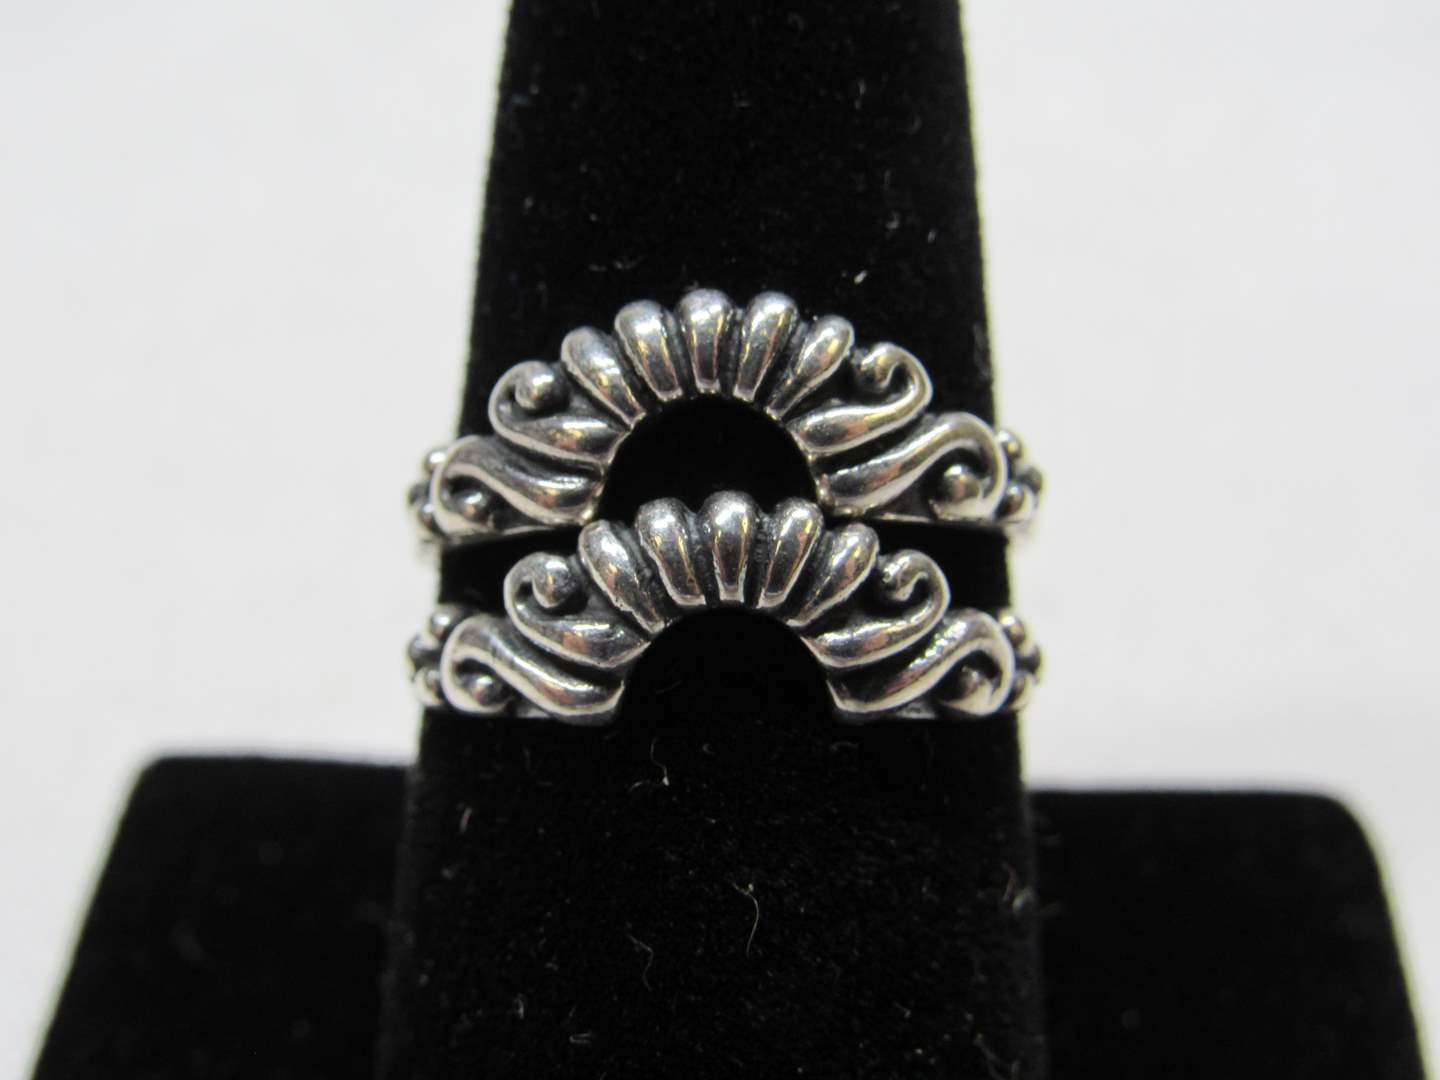 Lot # 231  2 sterling silver interlocking rings size 6 (main image)